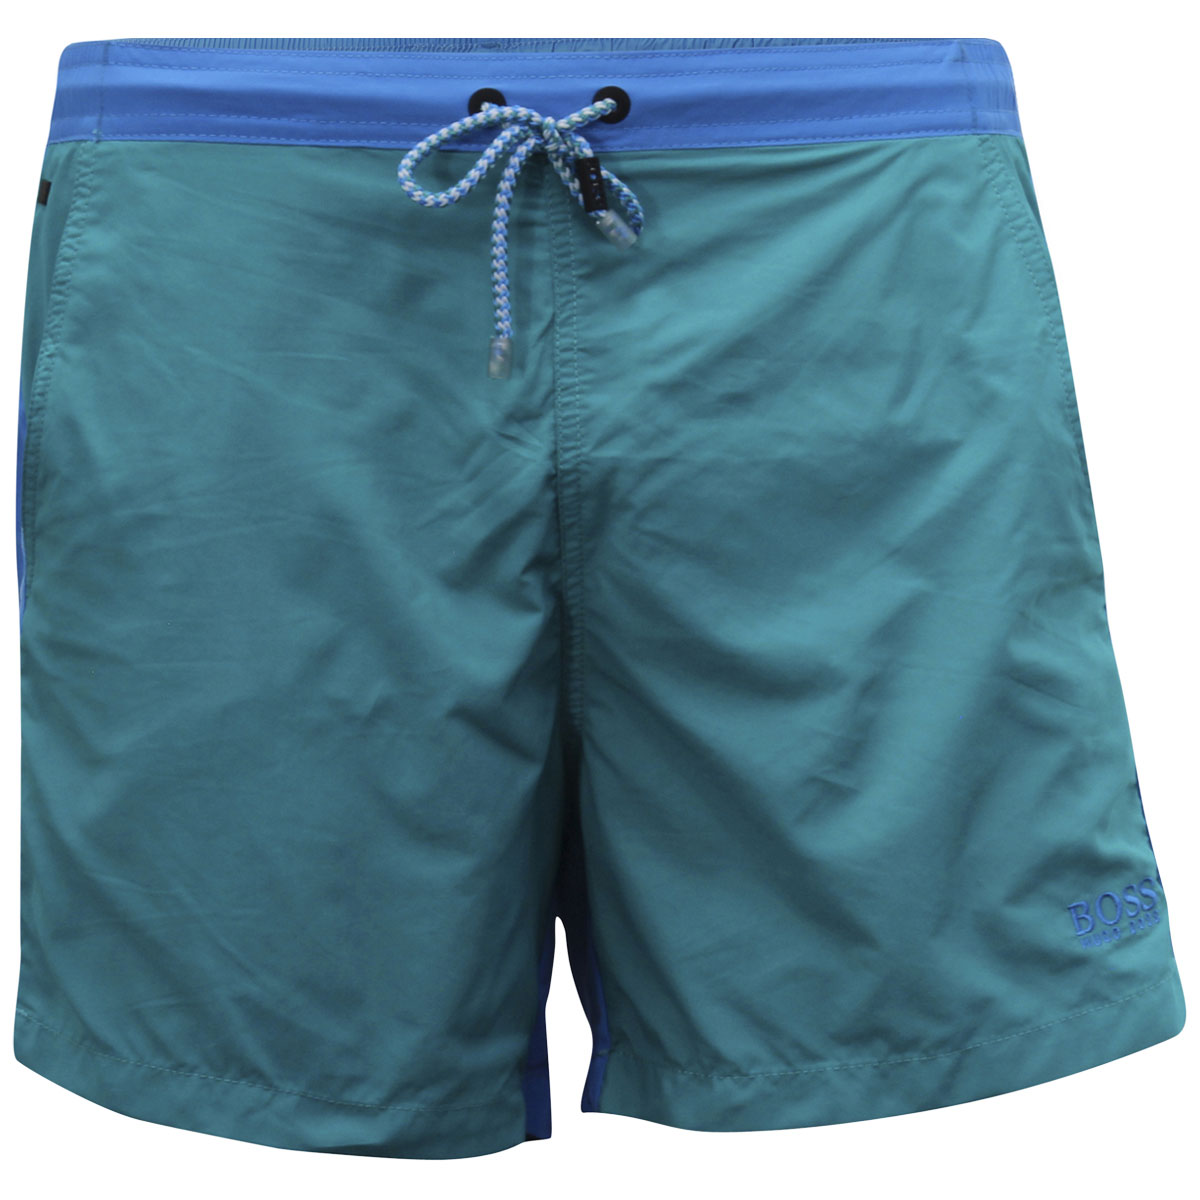 3f54c136 Hugo Boss Men's Snapper Swim Trunk - Choose Sz/color Turquoise/aqua Large.  About this product. Picture 1 of 6; Picture 2 of 6; Picture 3 of 6; Picture  4 of ...